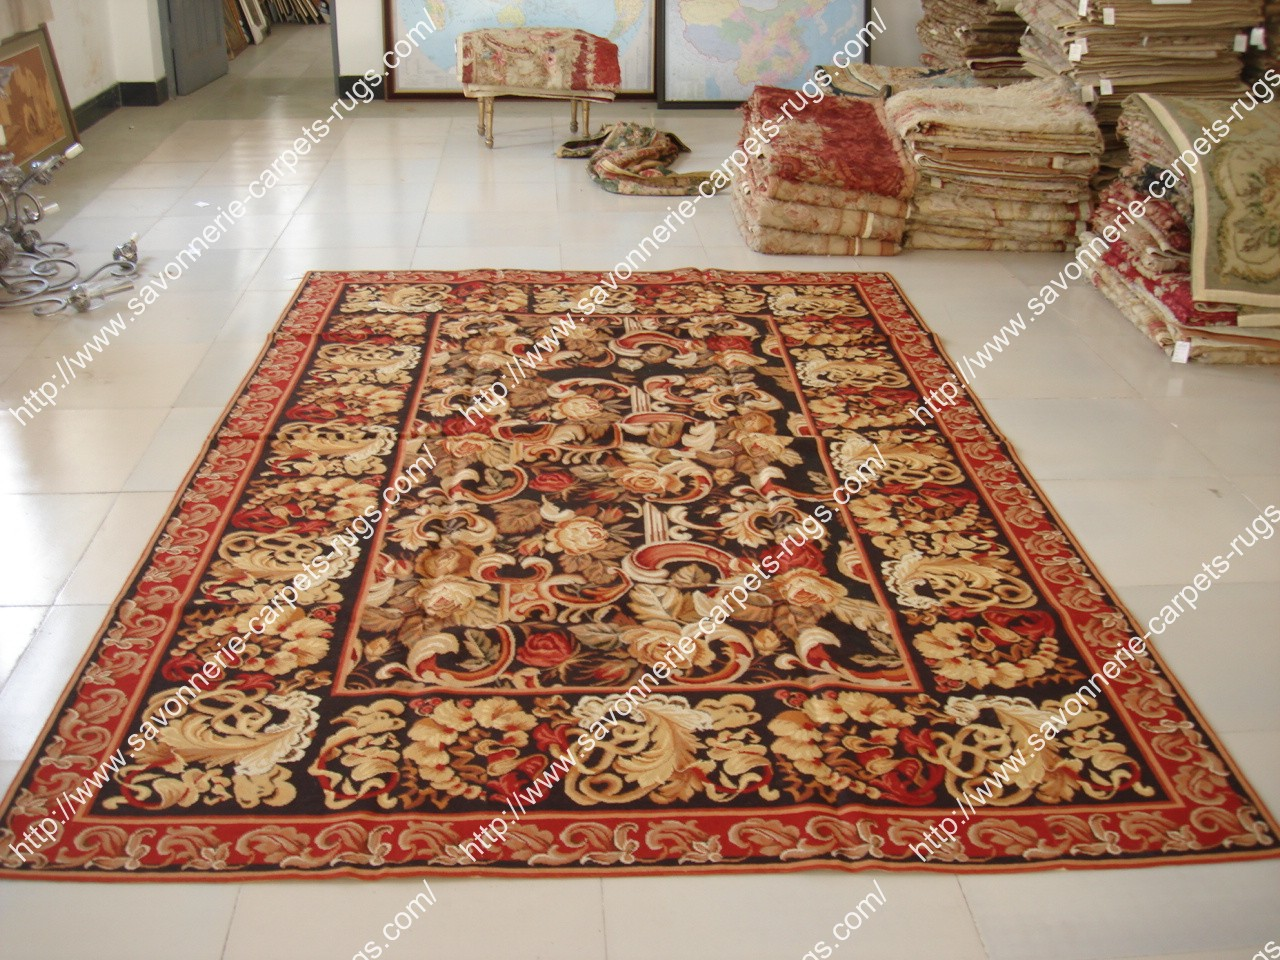 Needlepoint Rugs | China manufacturers